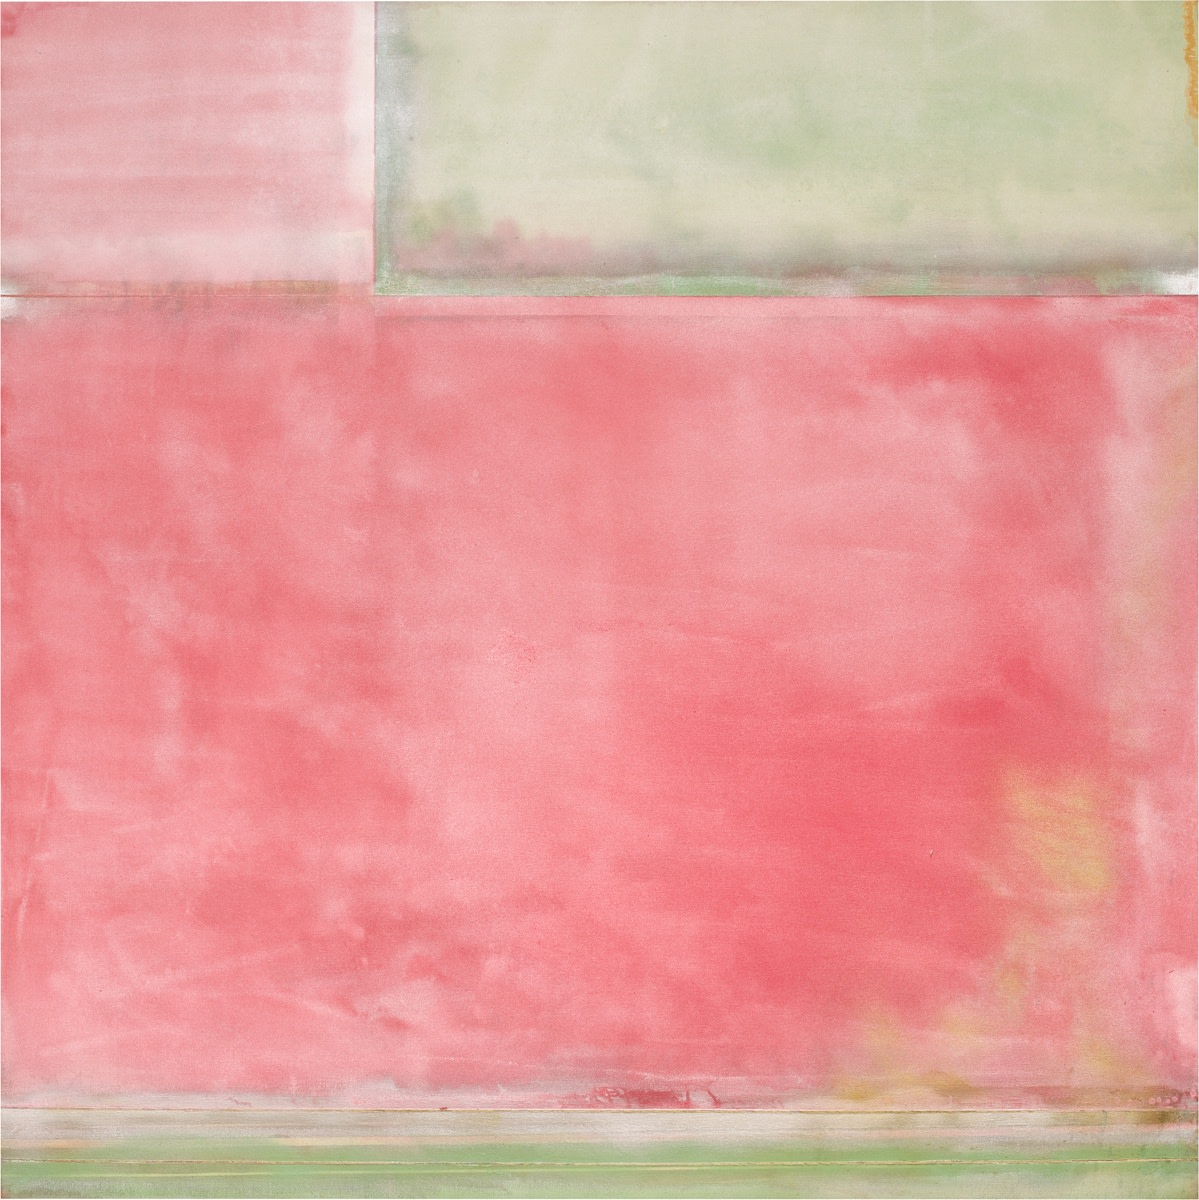 Detail of Frank Bowling, Yonder II, 1972, acrylic on canvas, 173 x 173 cm, 68 1/8 x 68 1/8 in